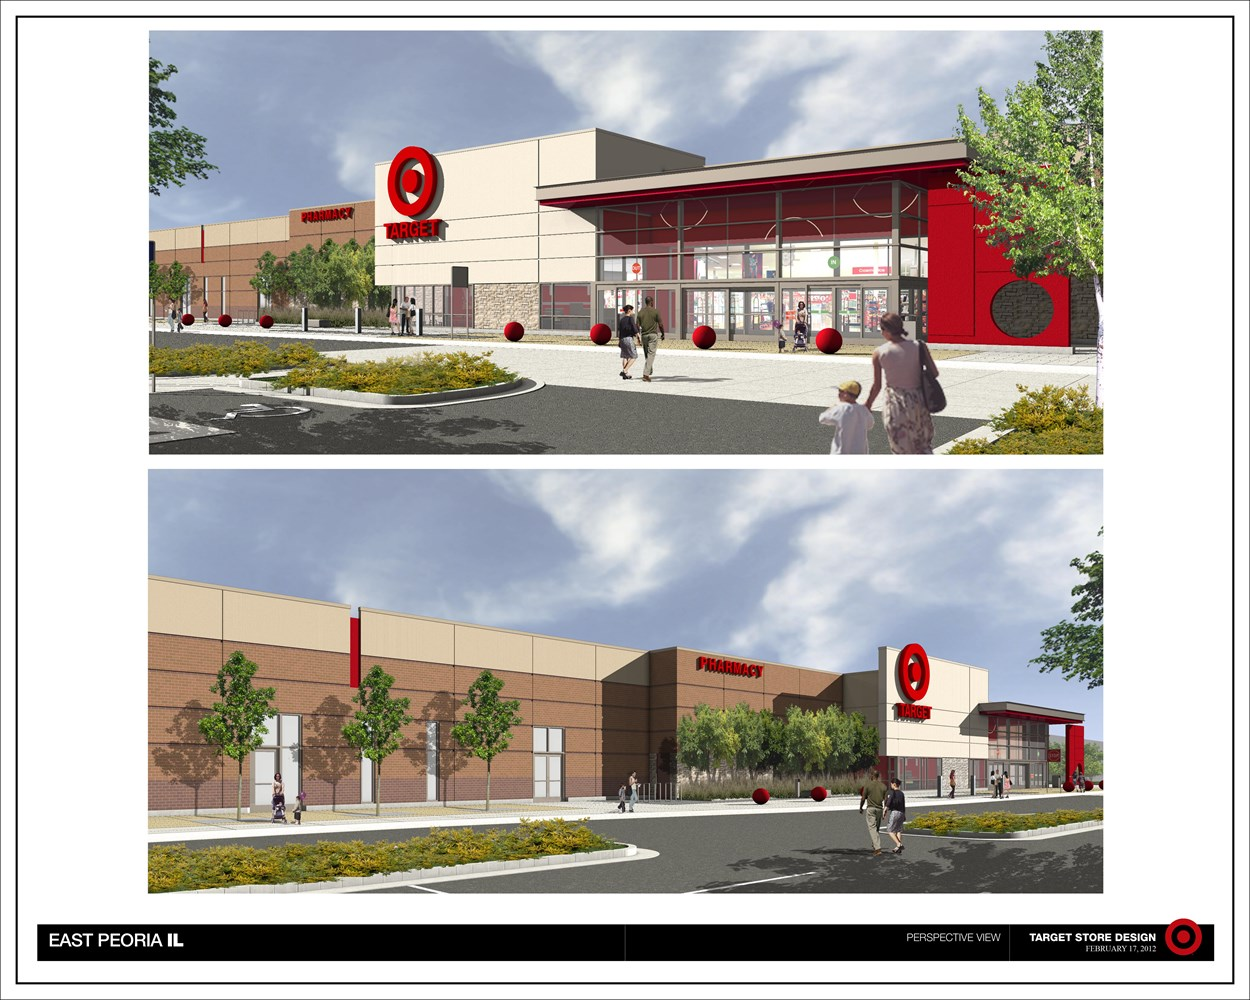 Target to Open New Store in East Peoria, Ill.